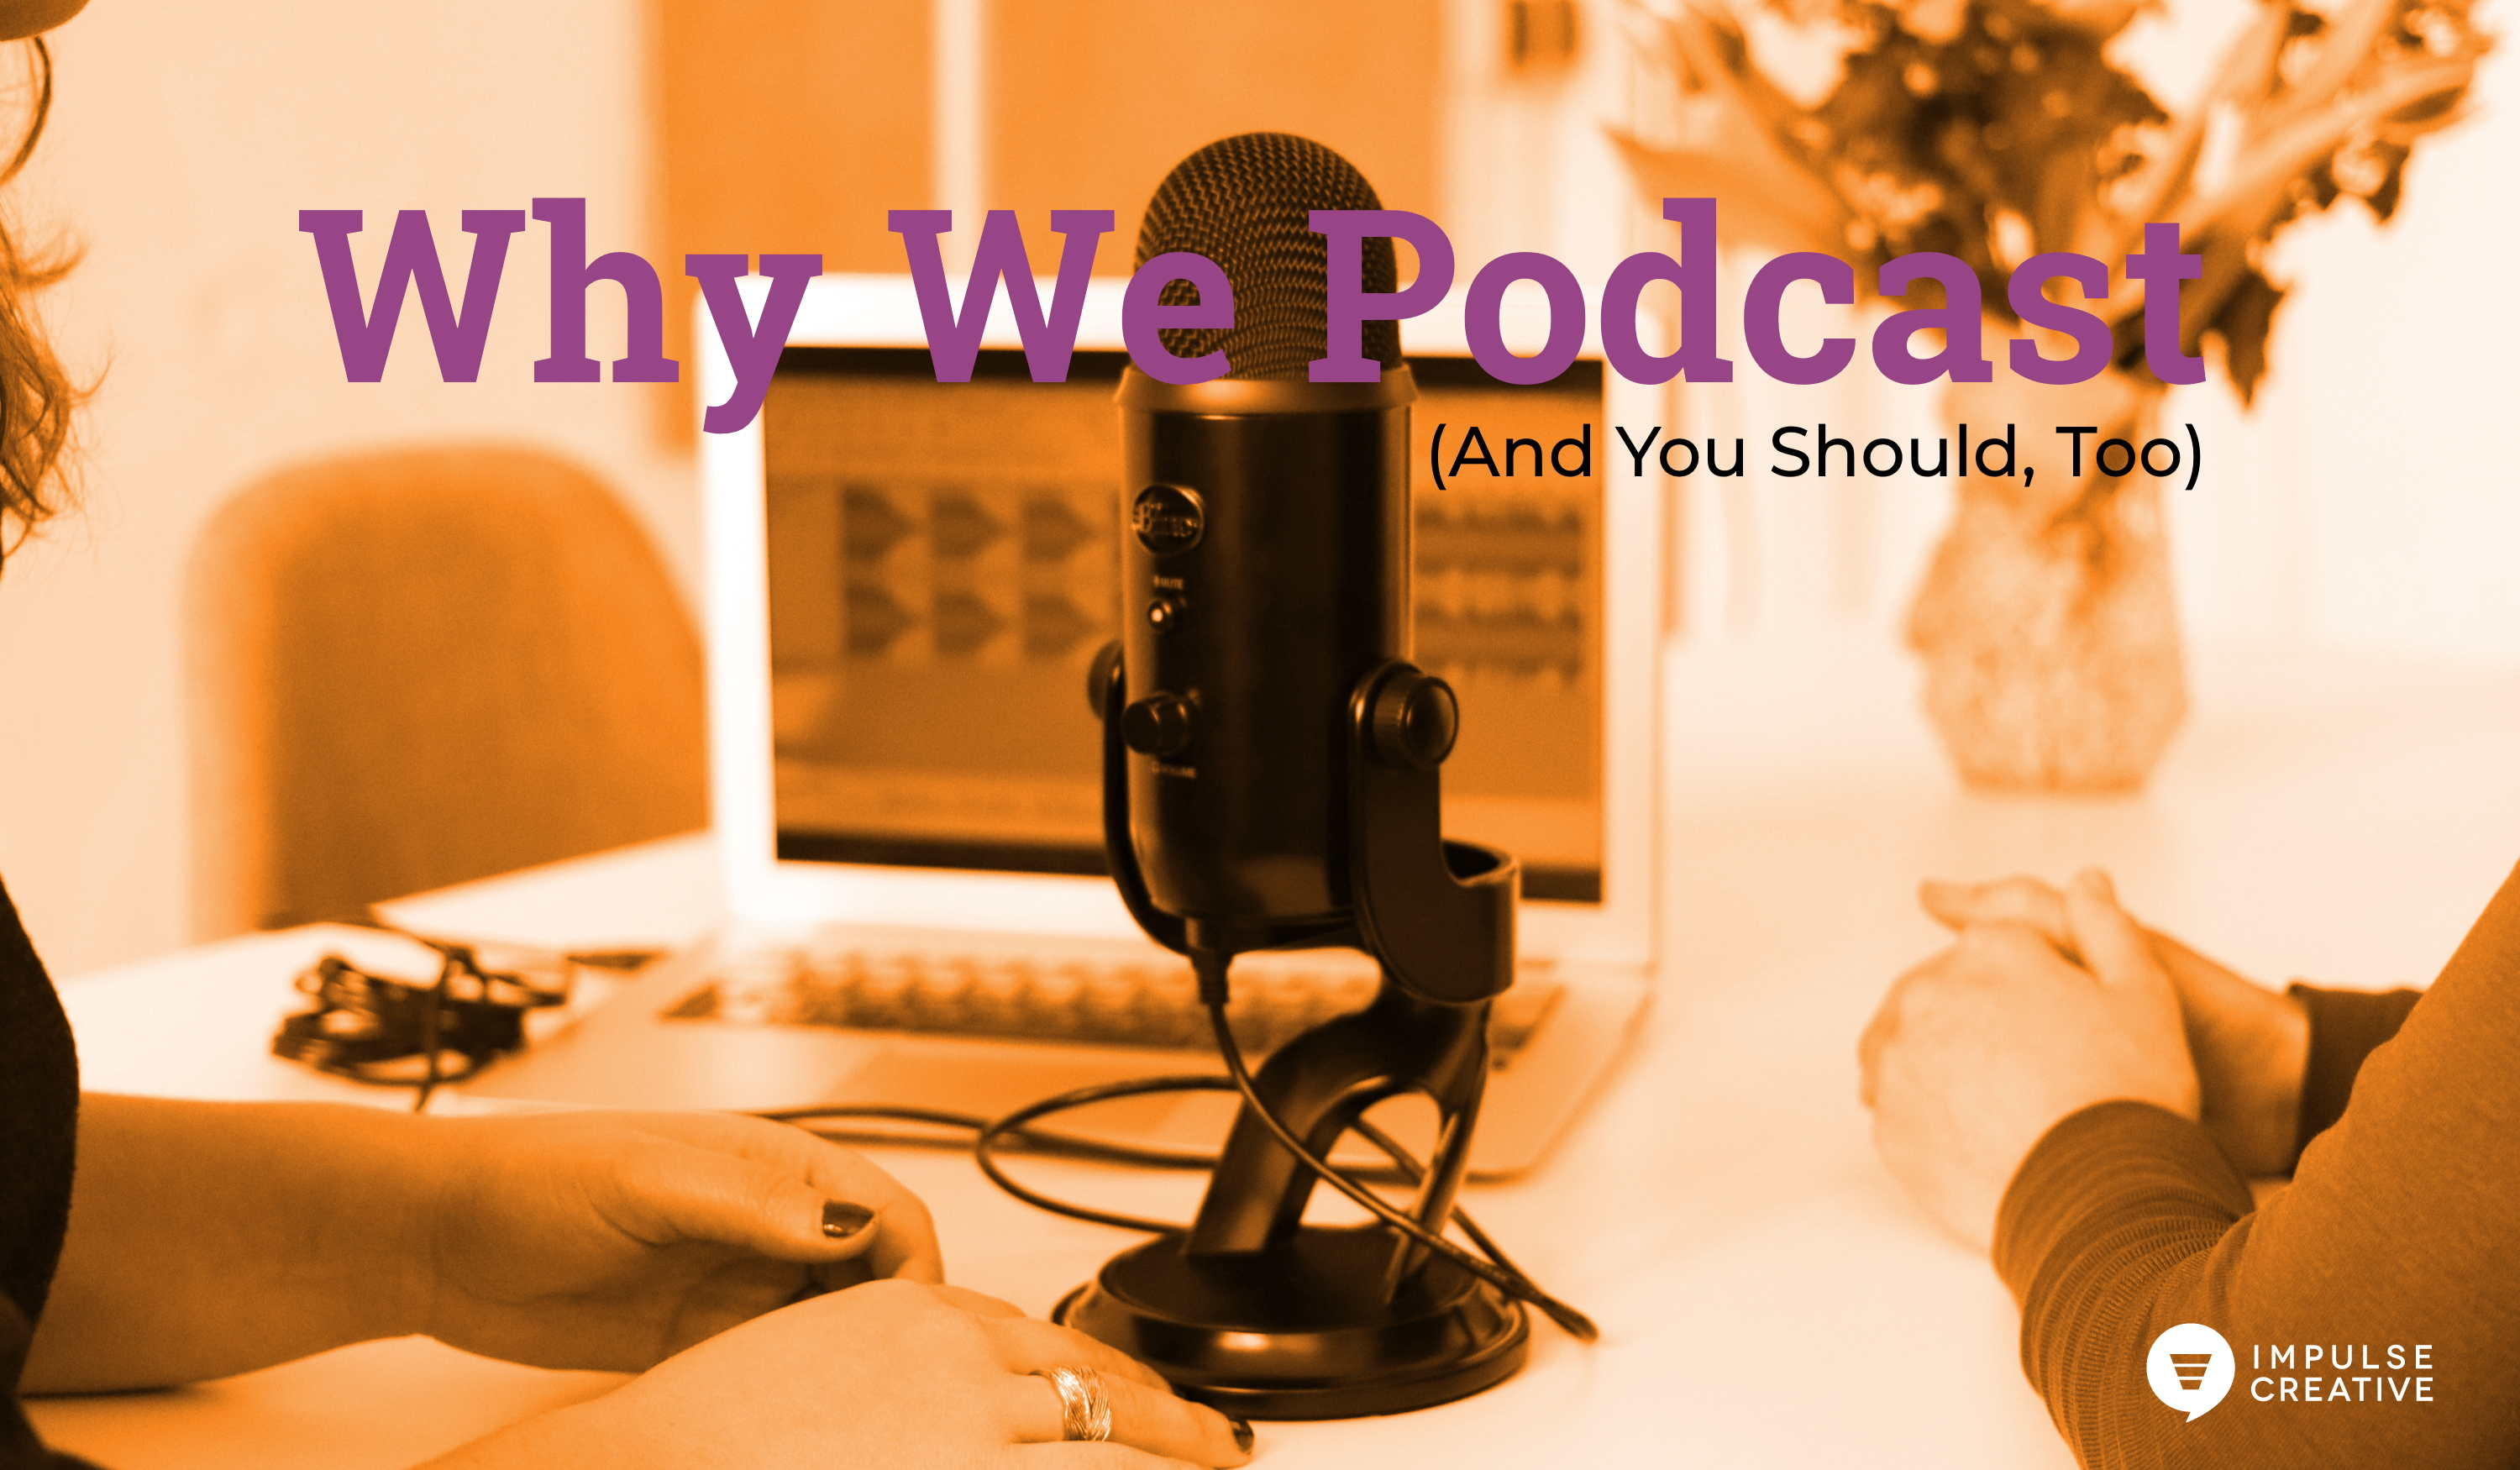 Why We Podcast - and You Should Too!